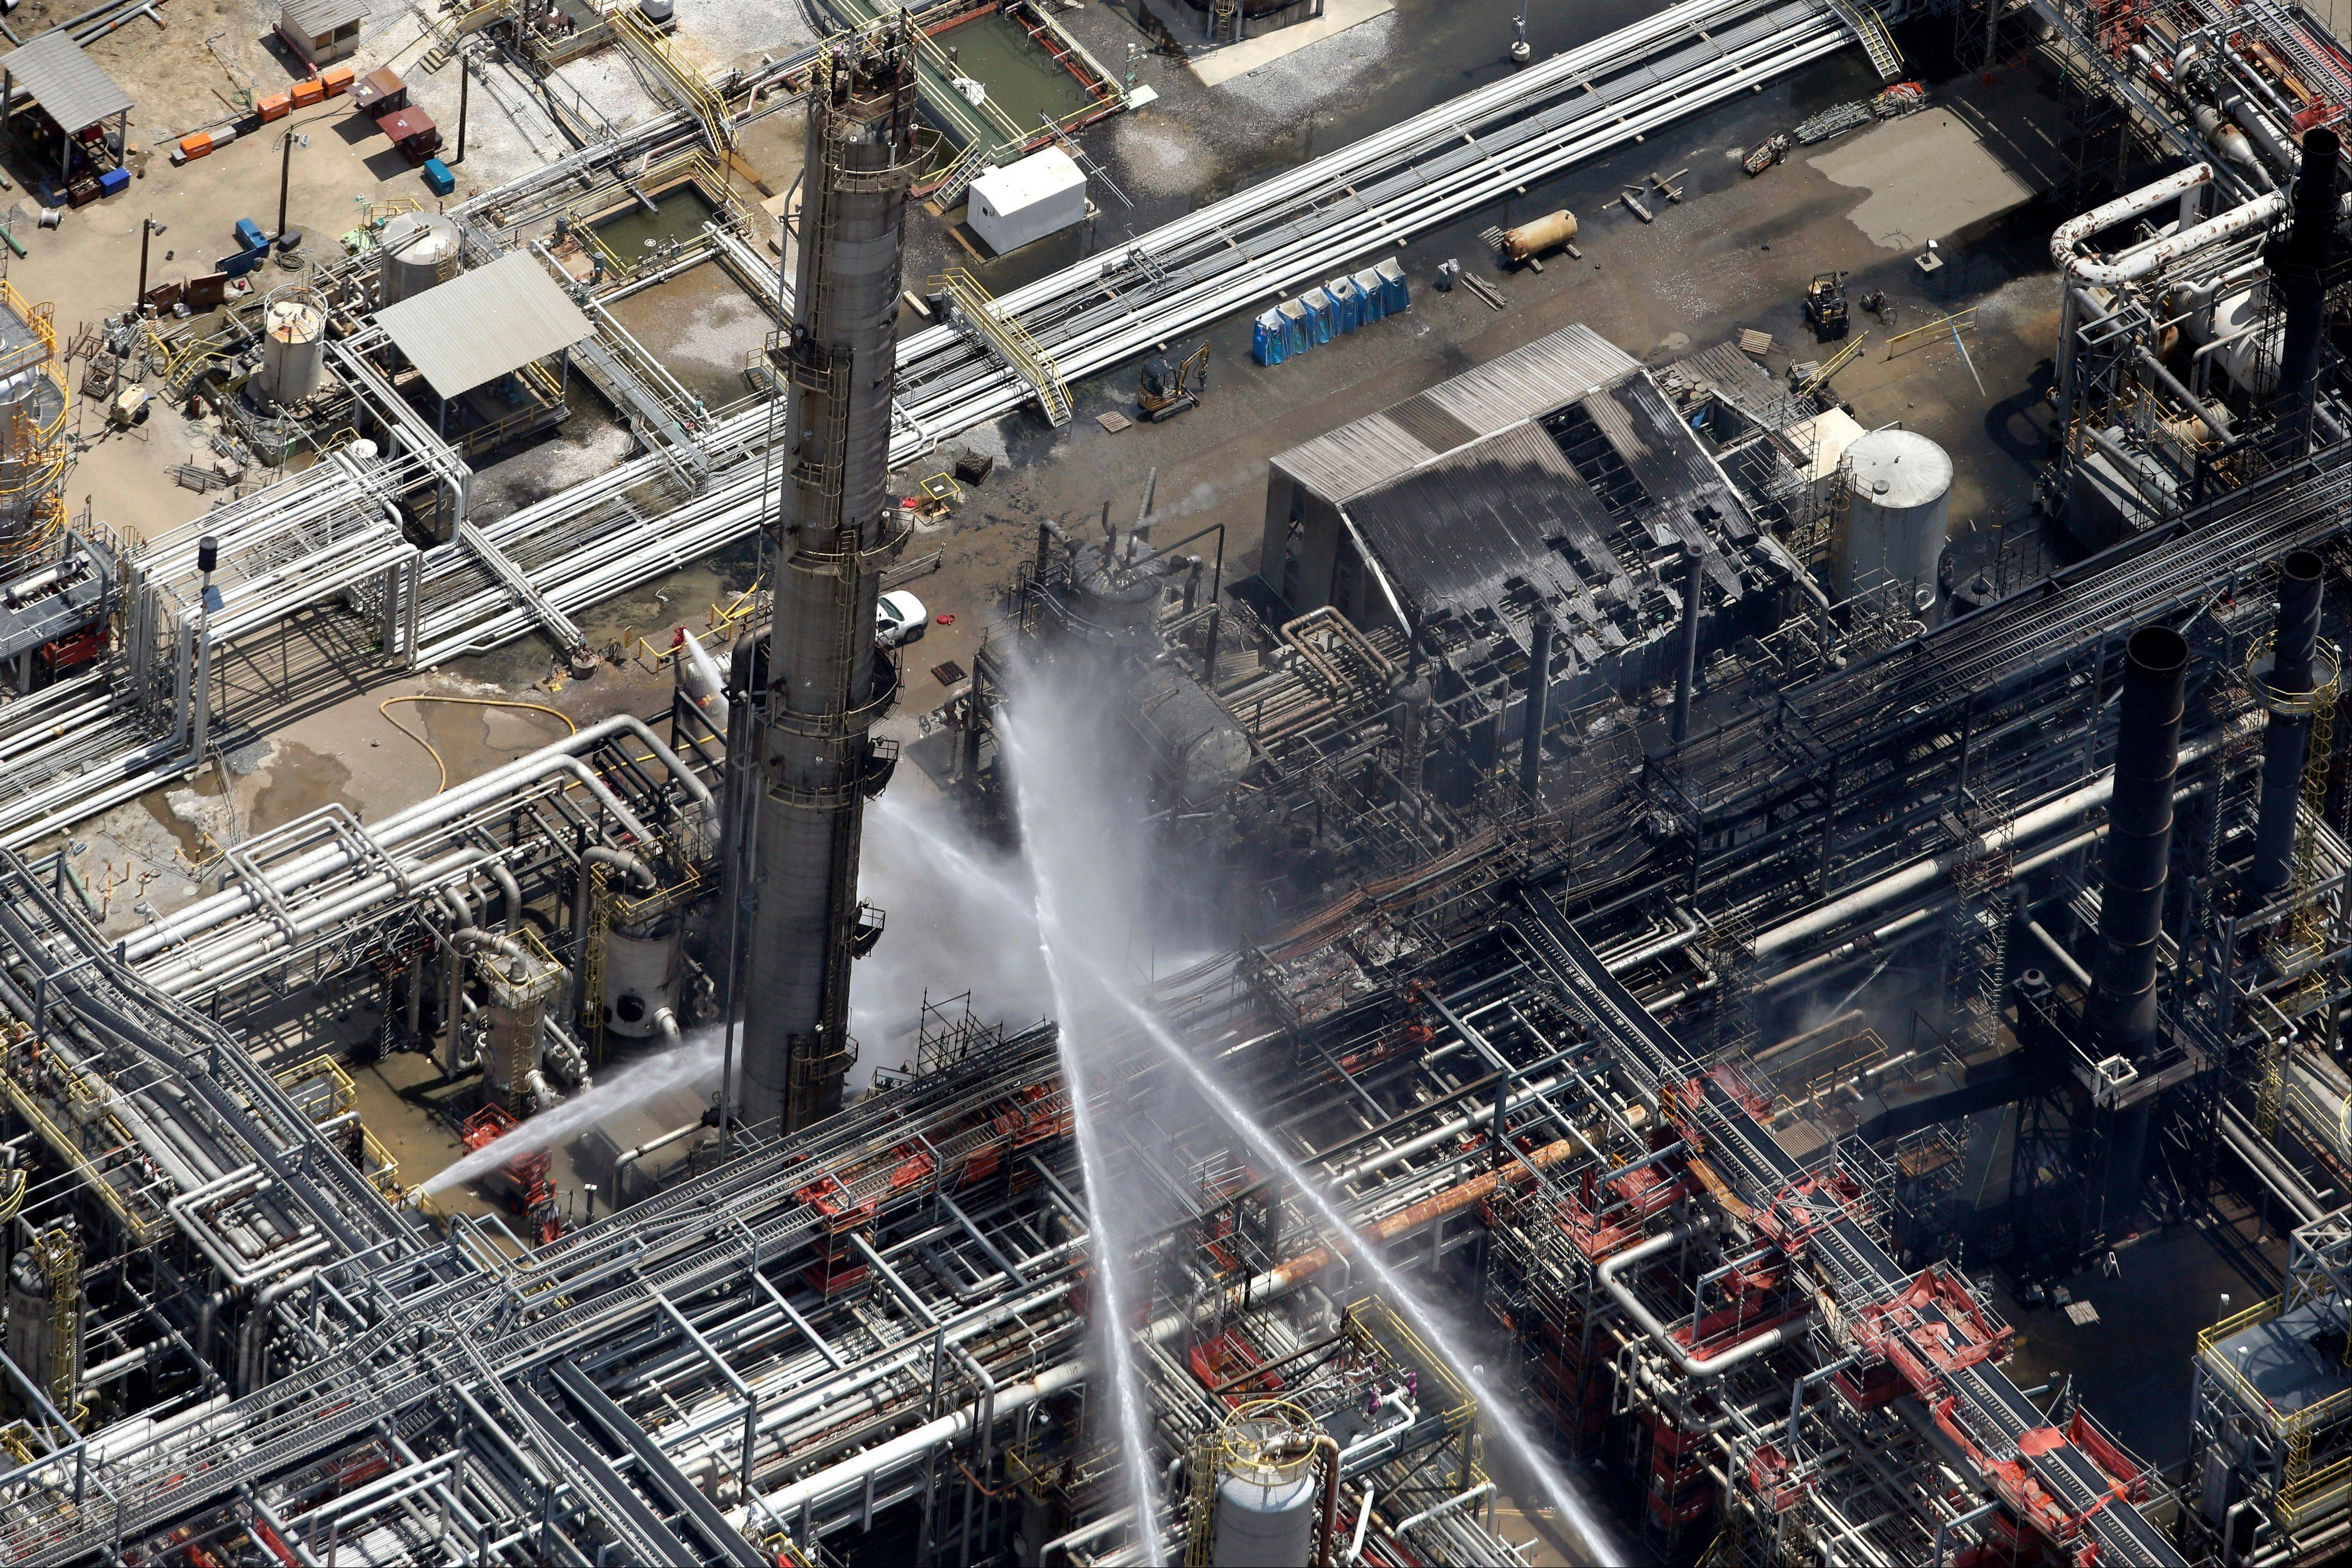 A chemical plant fire is seen in an aerial photo about twenty miles southeast of Baton Rouge, in Geismer, La., Thursday, June 13, 2013. The plant makes highly flammable gases that are basic building blocks in the petrochemical industry.